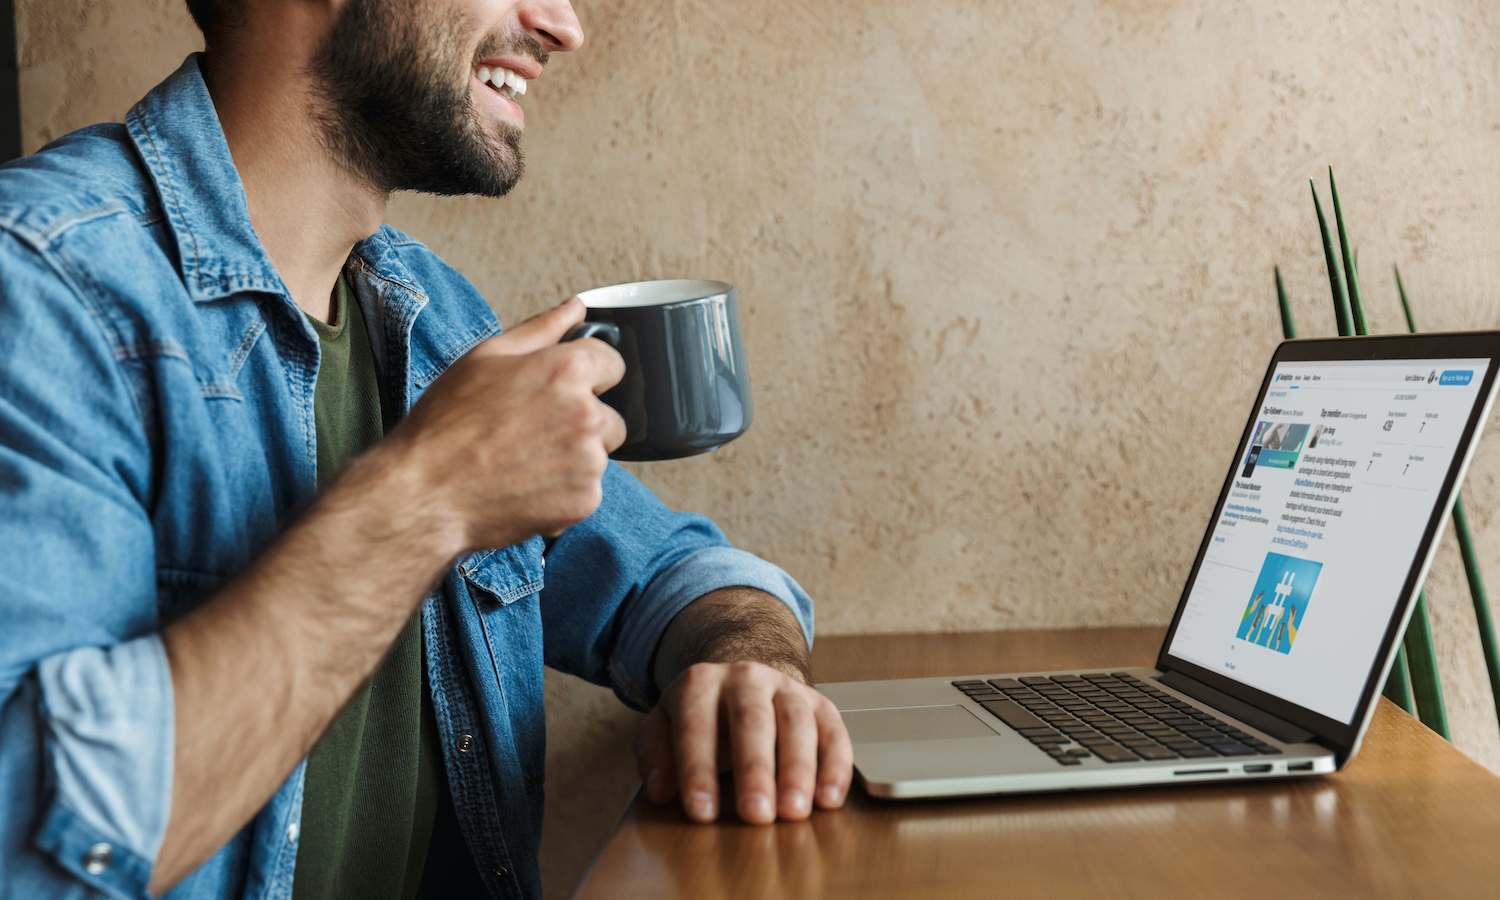 HVAC business owner learning new marketing tips while sipping coffee